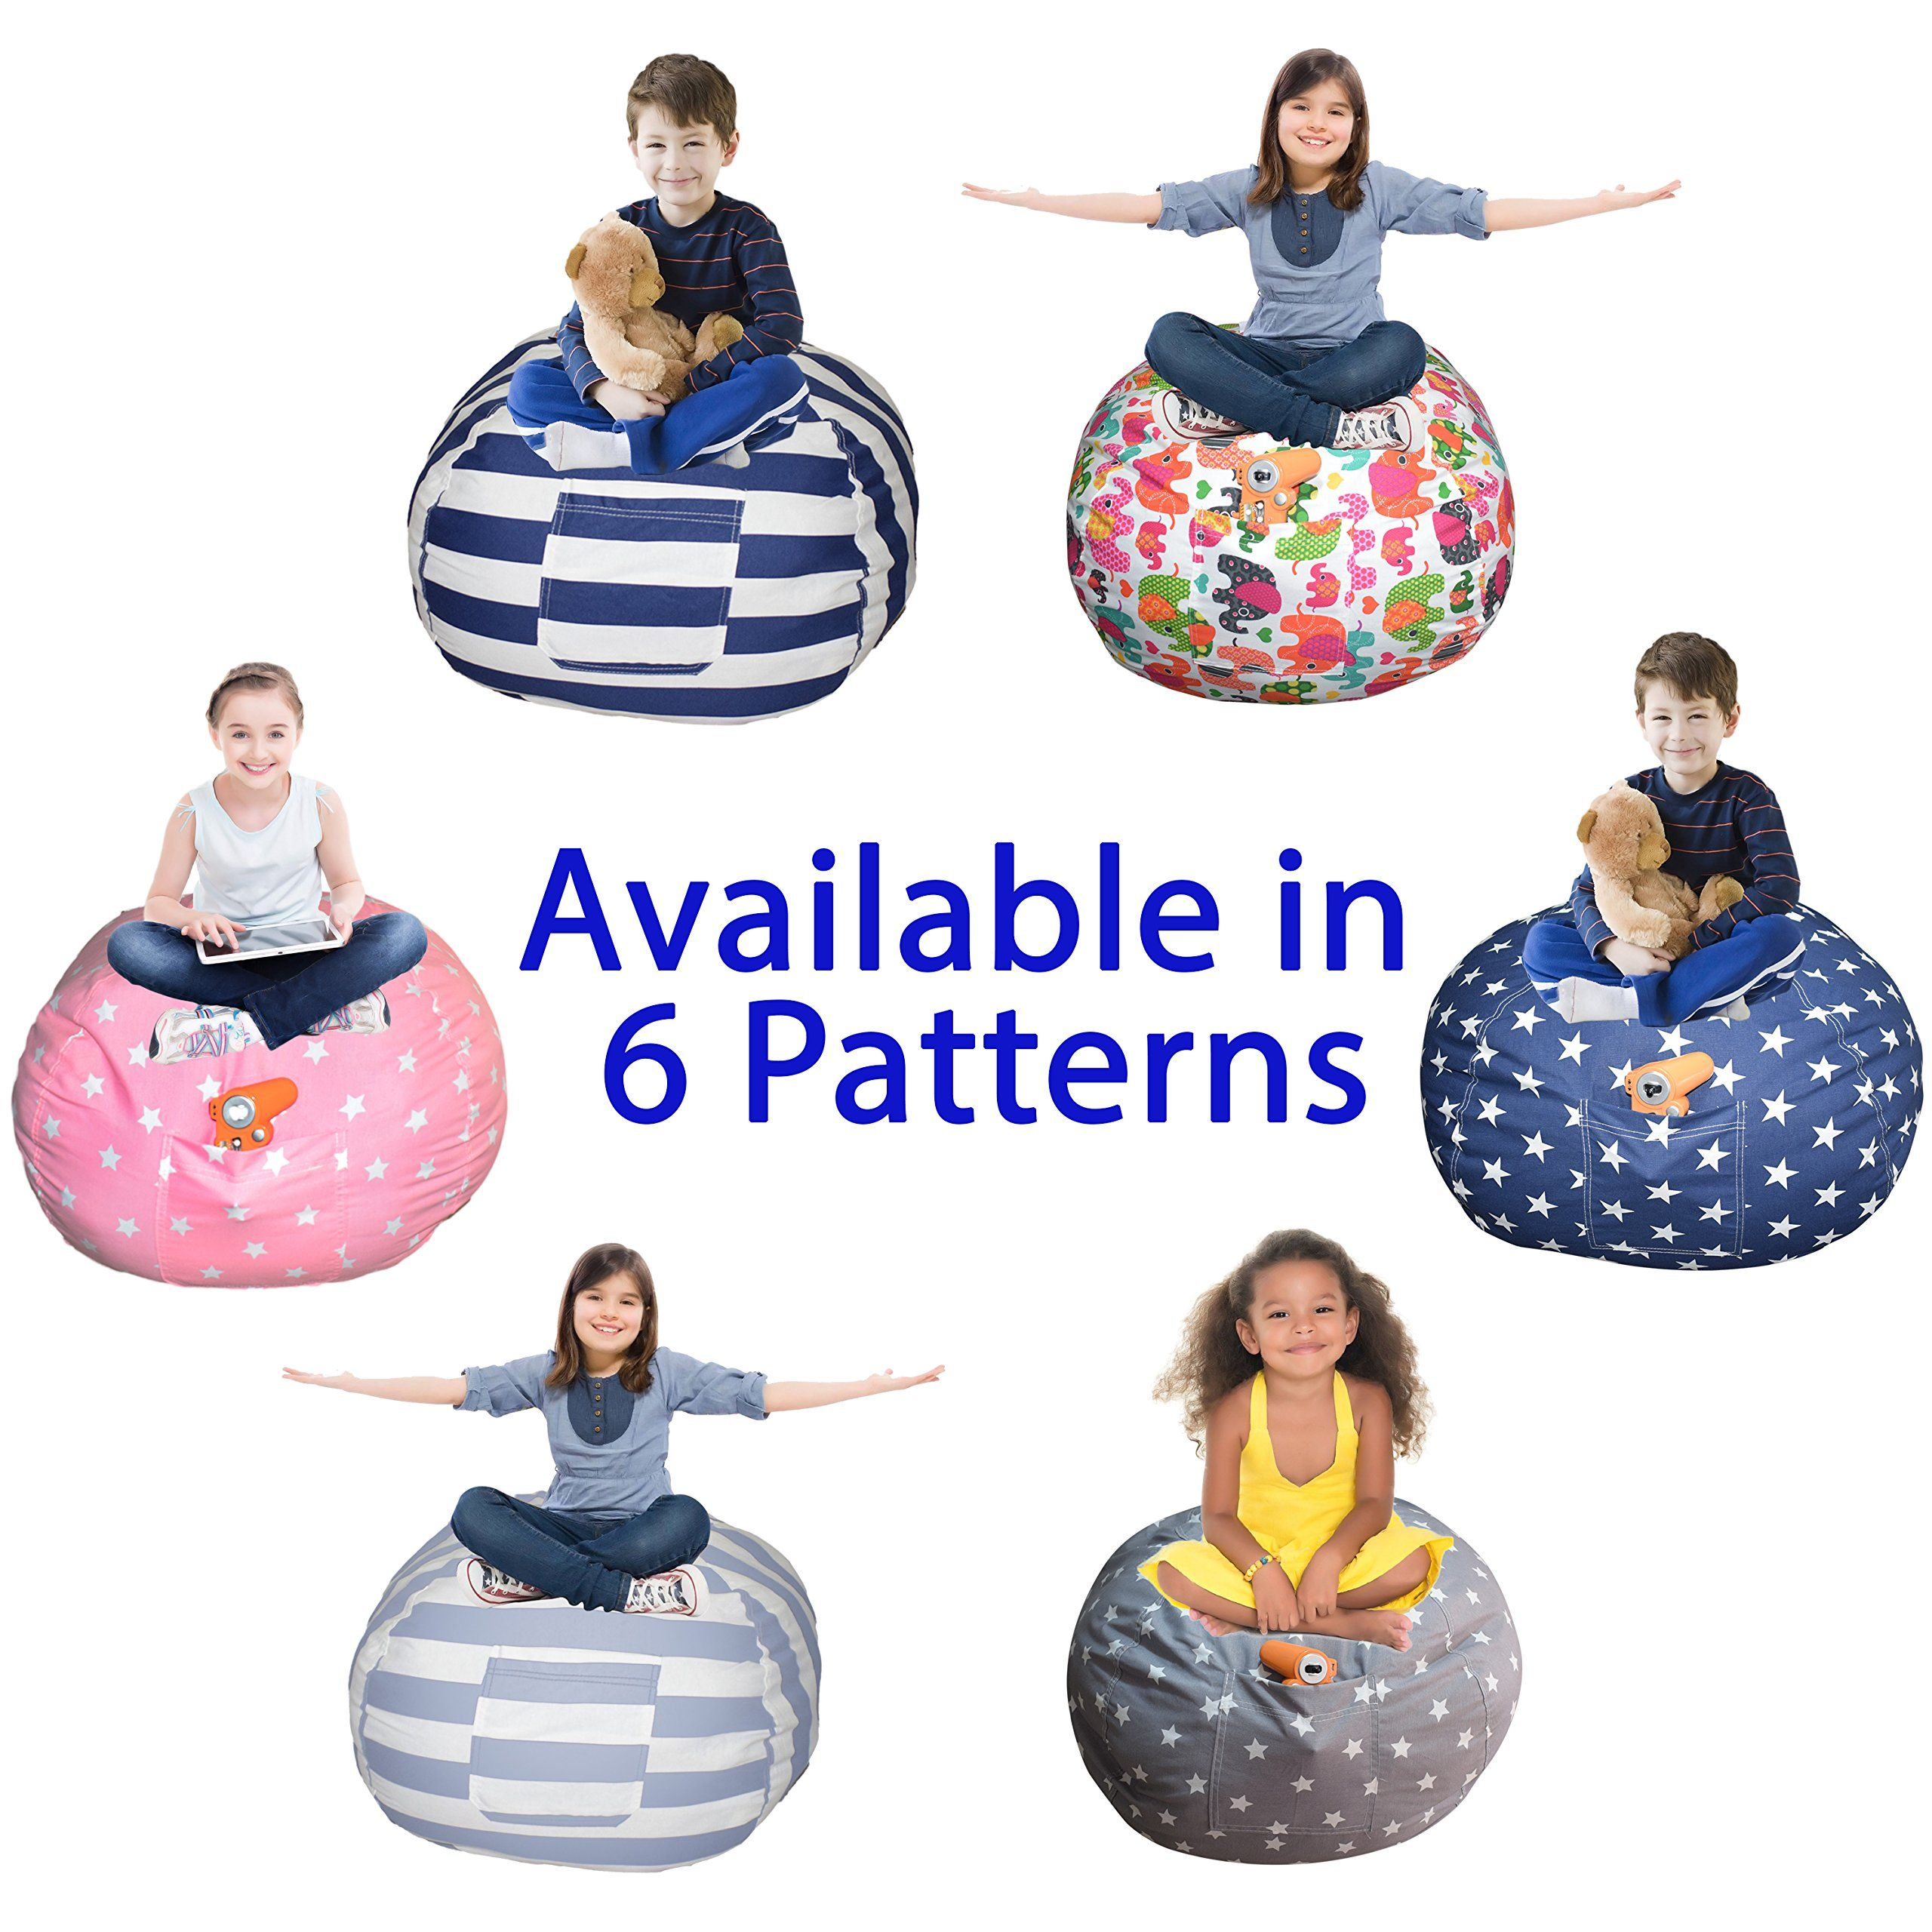 Extra Large Stuffed Animal Storage Bean Bag Cover Lab Tested Product The Ultimate Stuffed Animal Storage Large Stuffed Animals Bean Bag Chair Kids